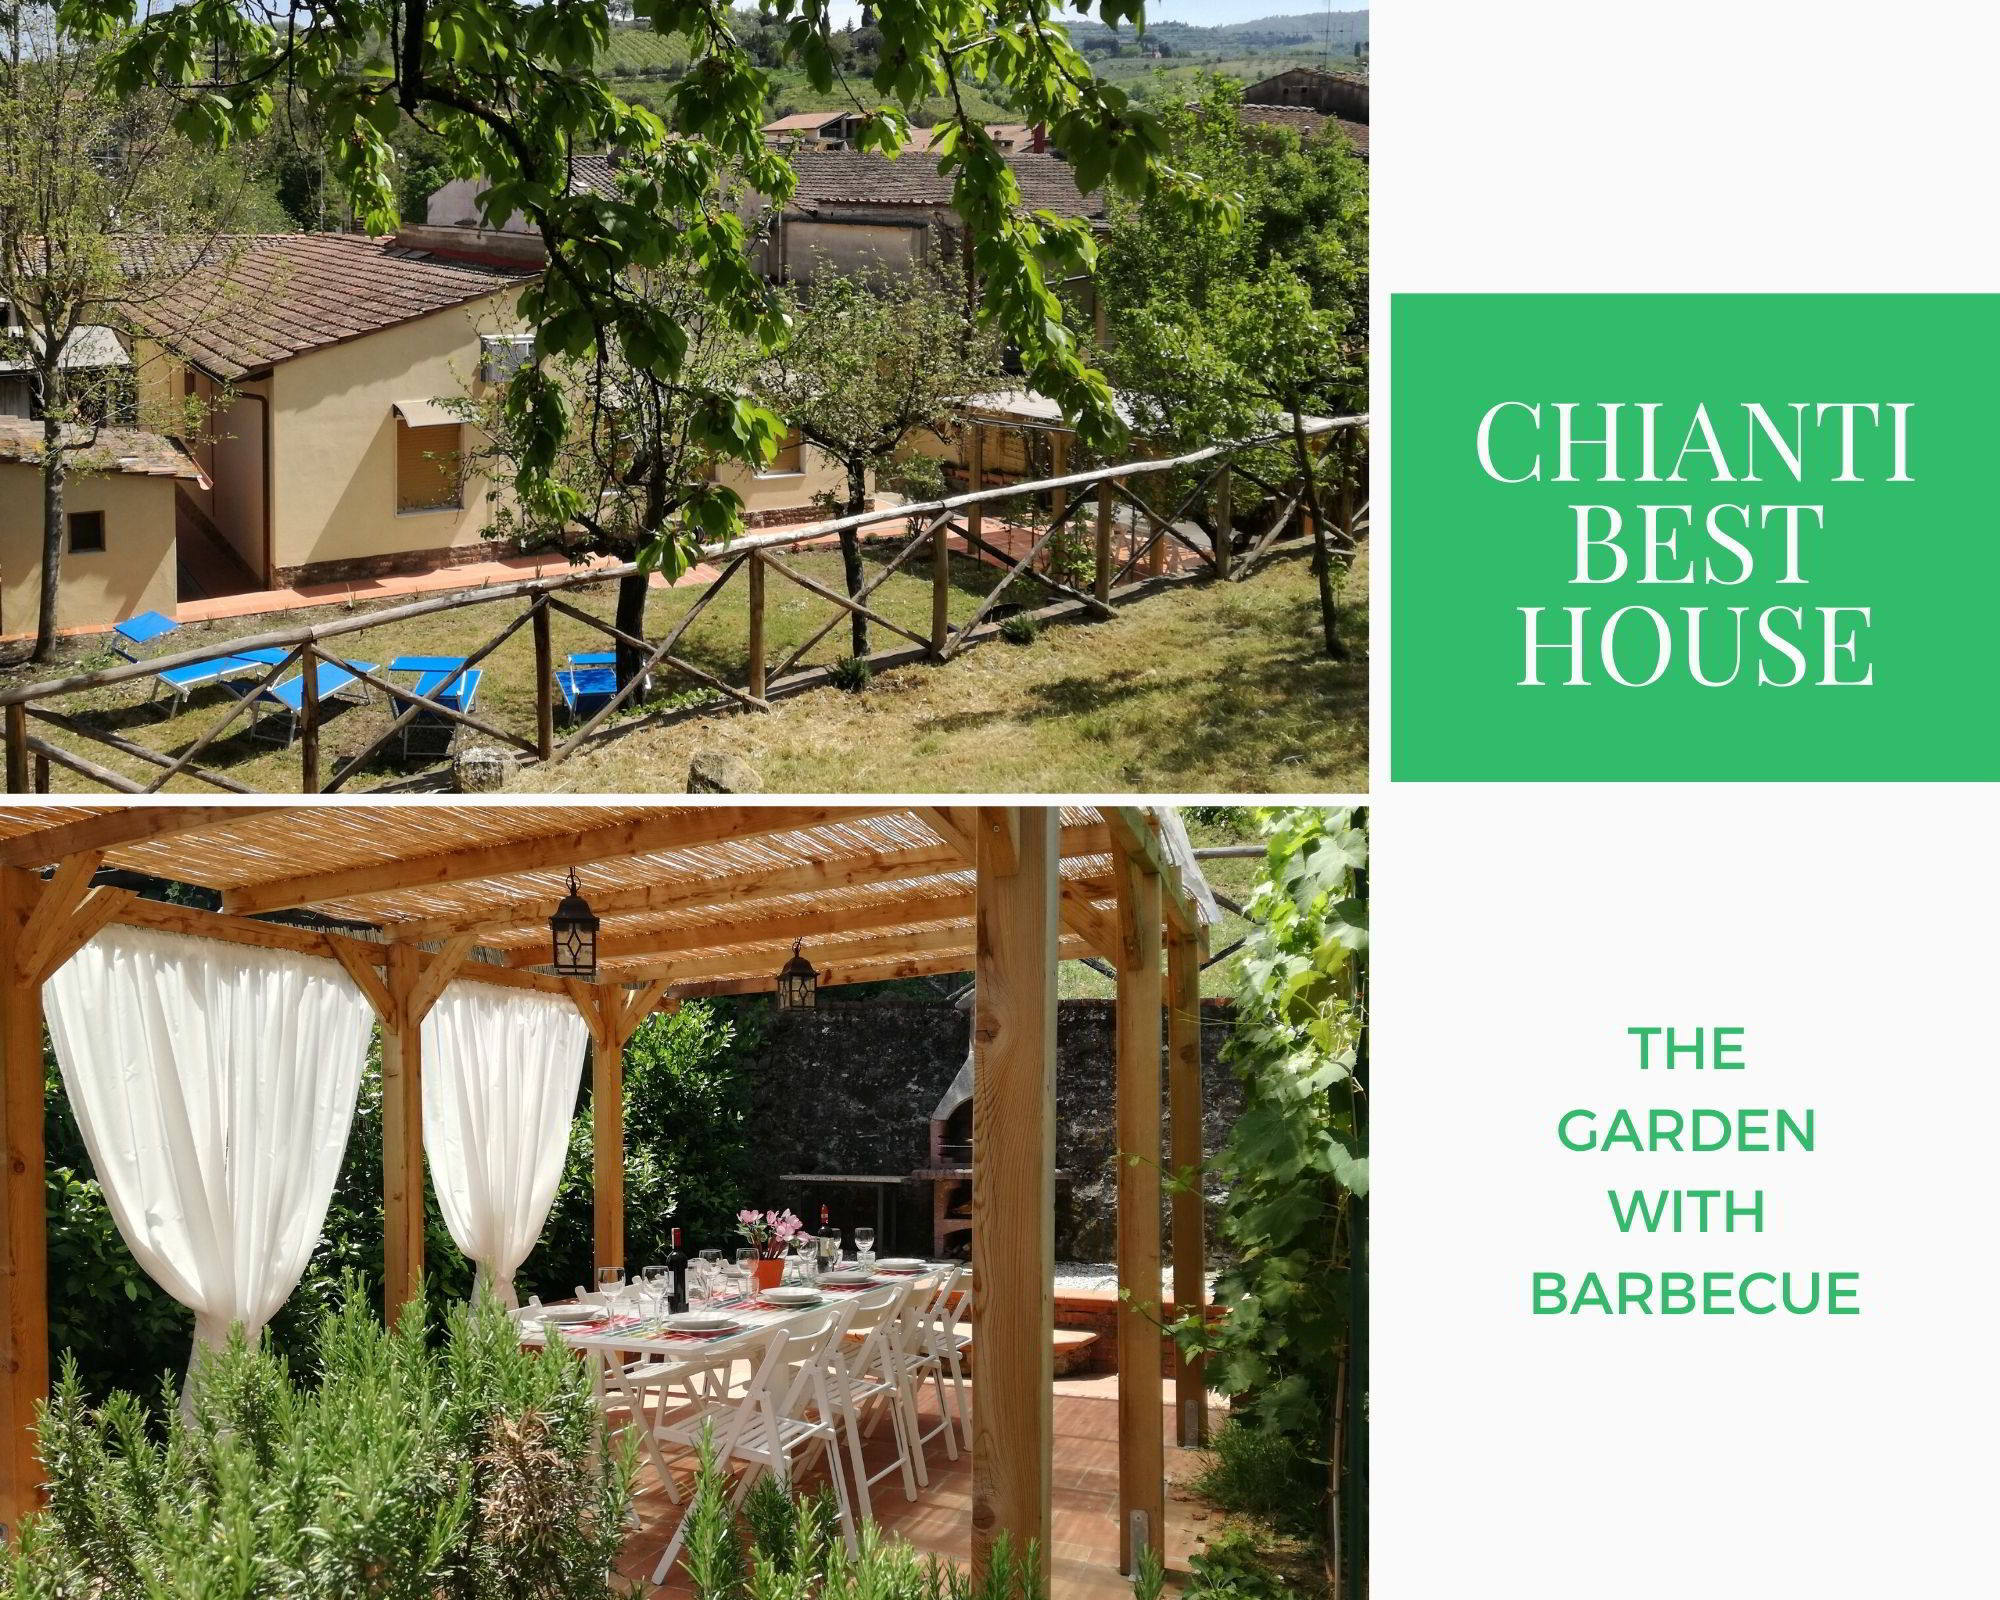 CASA VACANZE CHIANTI BEST HOUSE GARDEN WITH BARBECUE